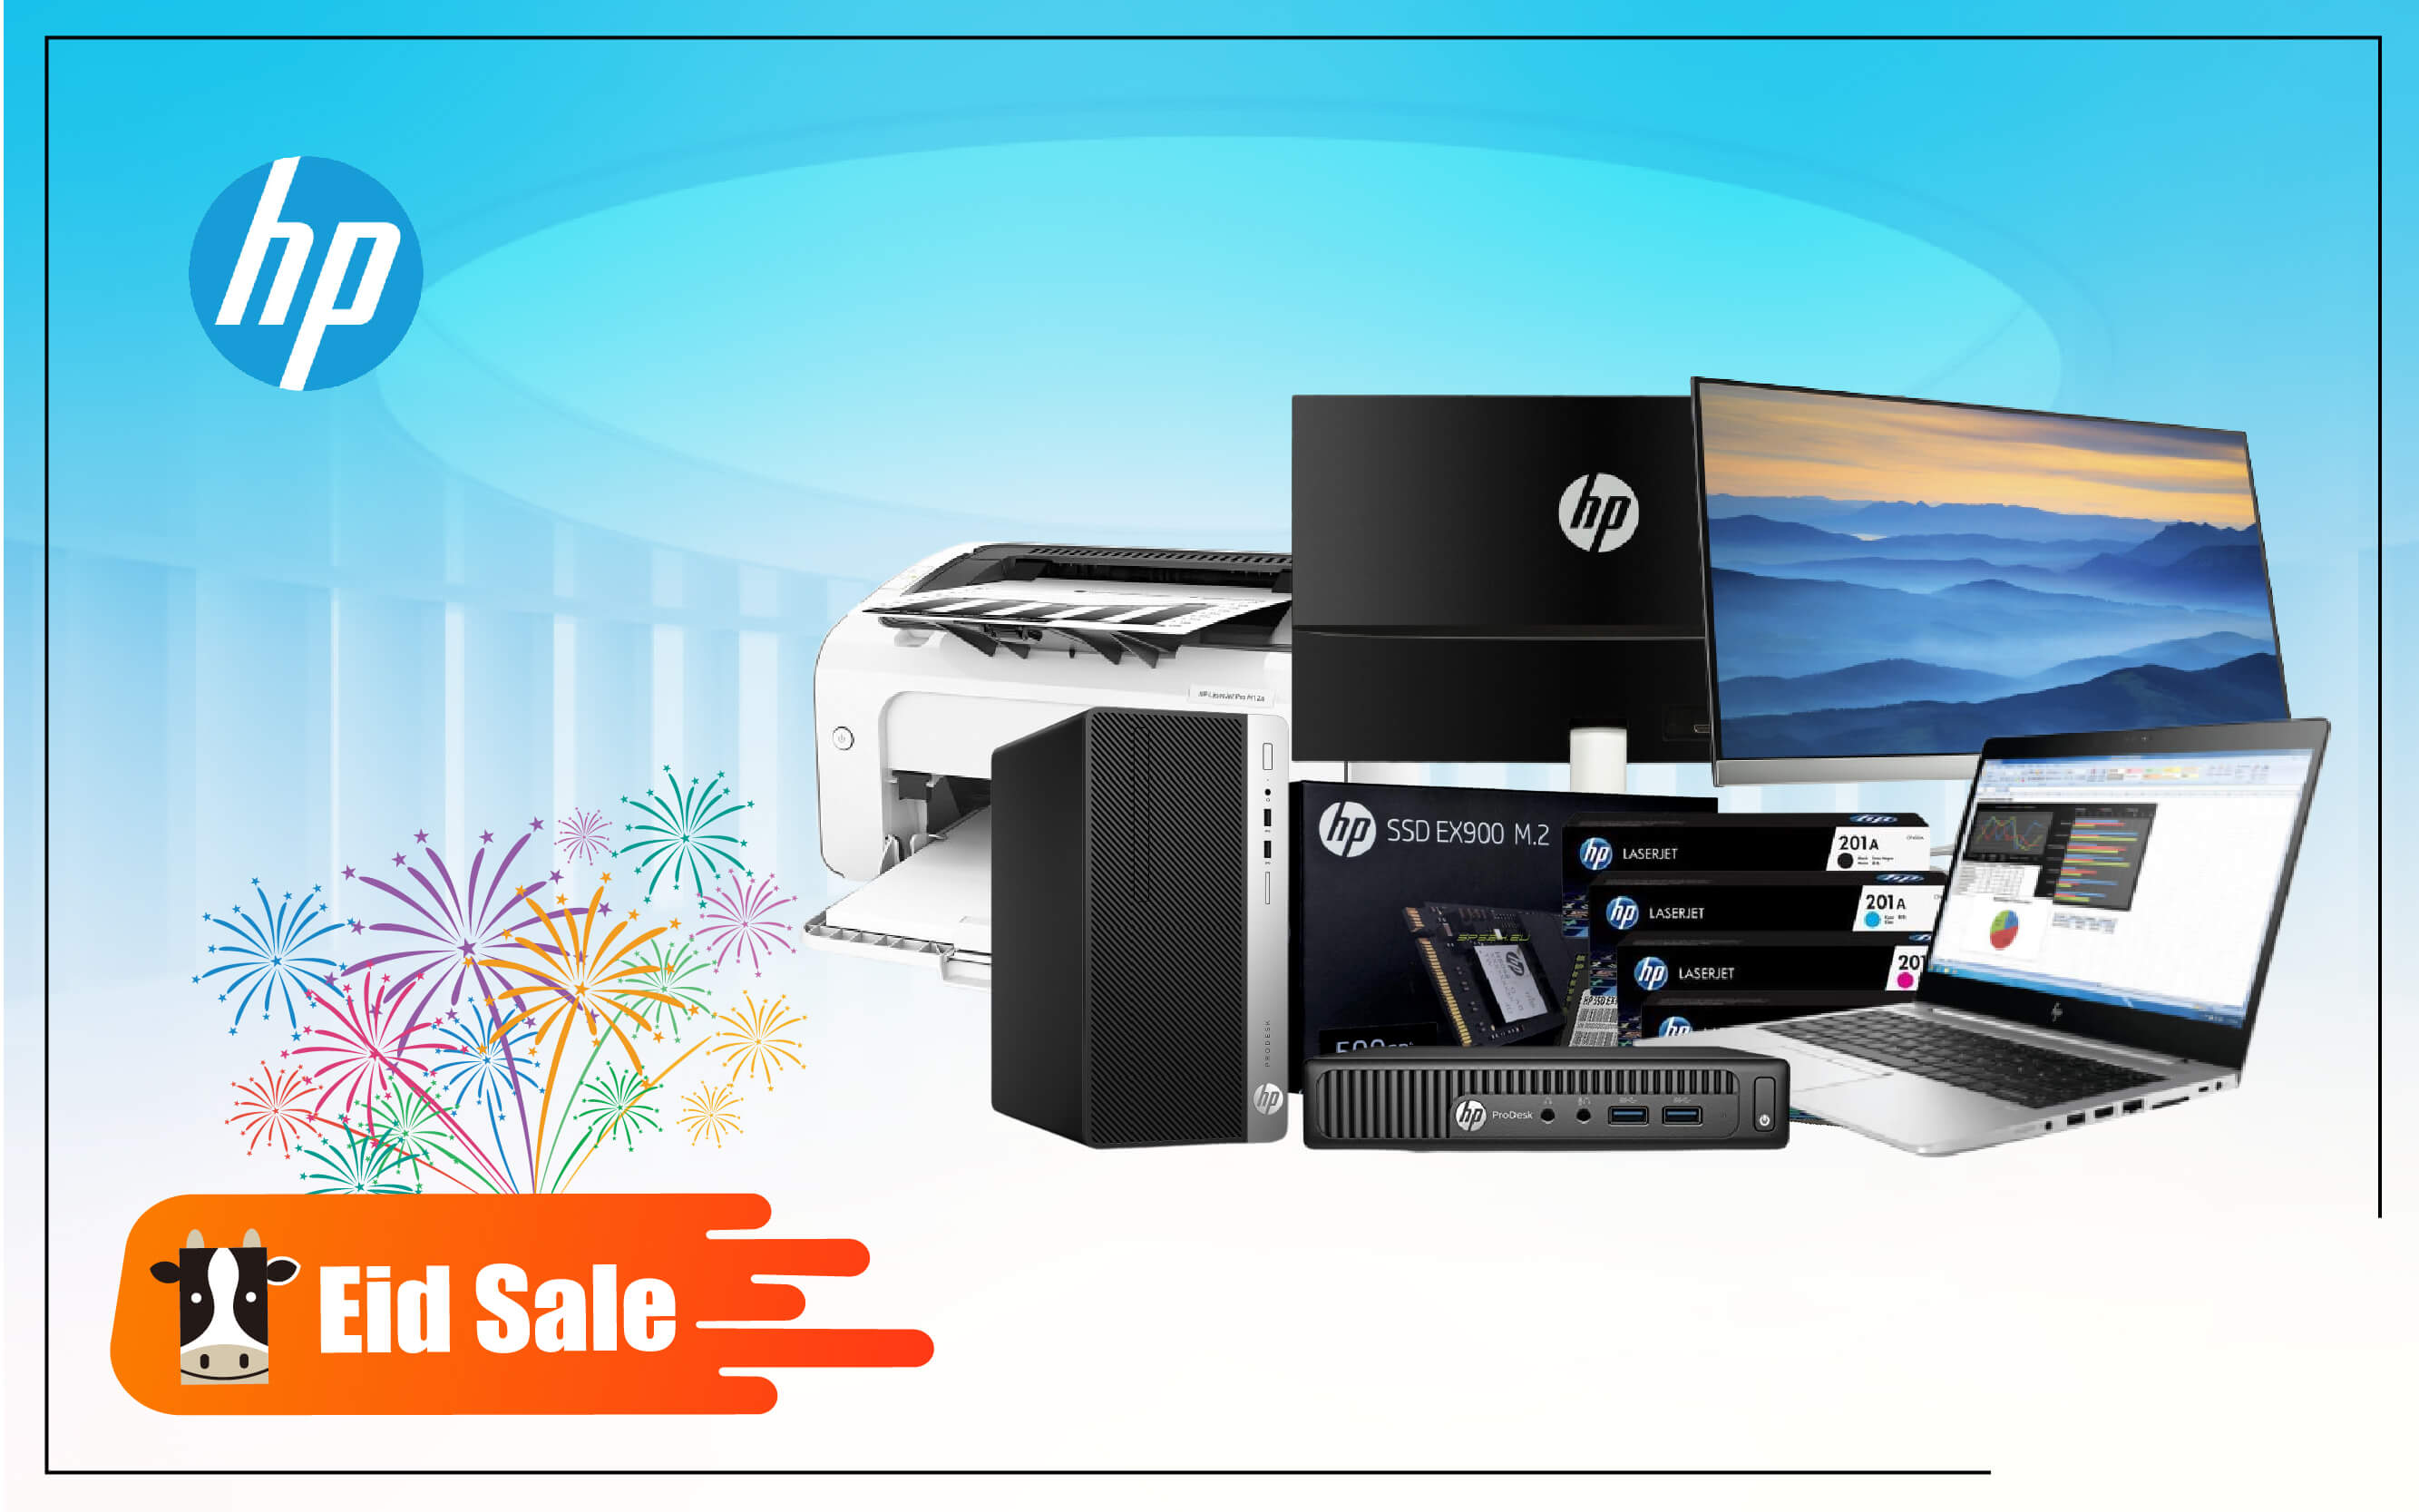 hp products price in bangladesh